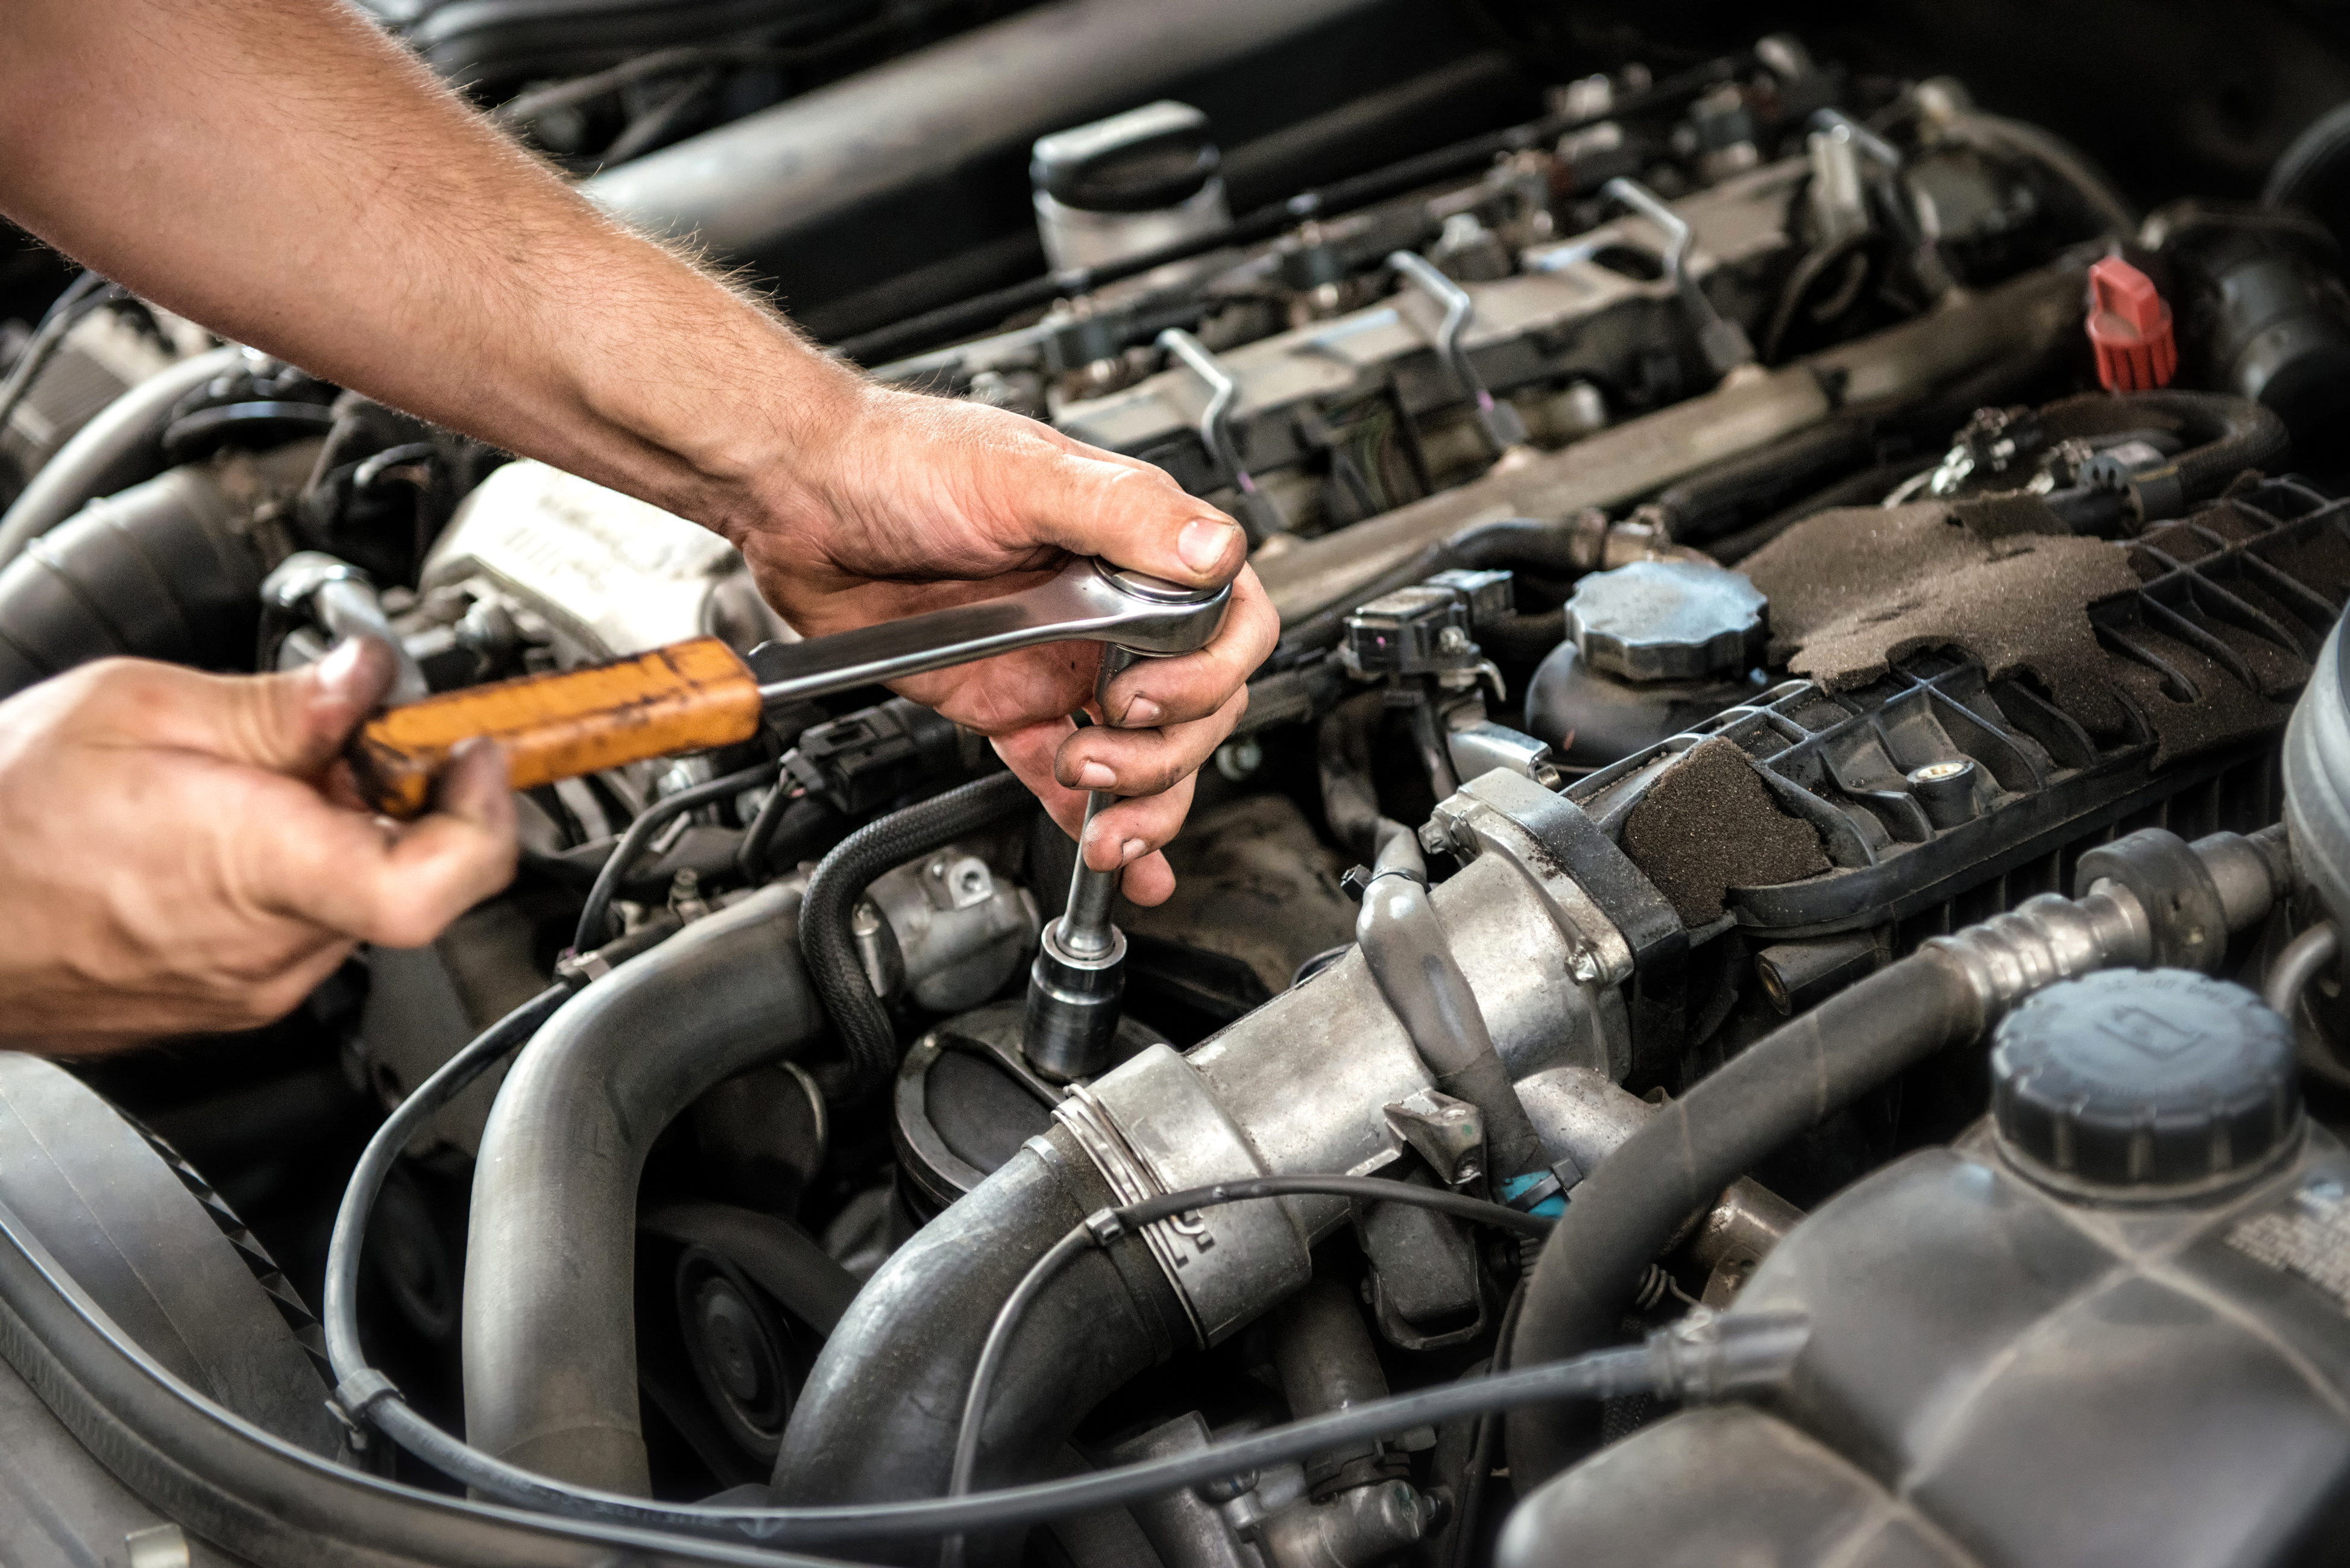 repair cars workshop specialists motor equipped interior auto their trained facility well parts has volvo large in berry group equipment repairs